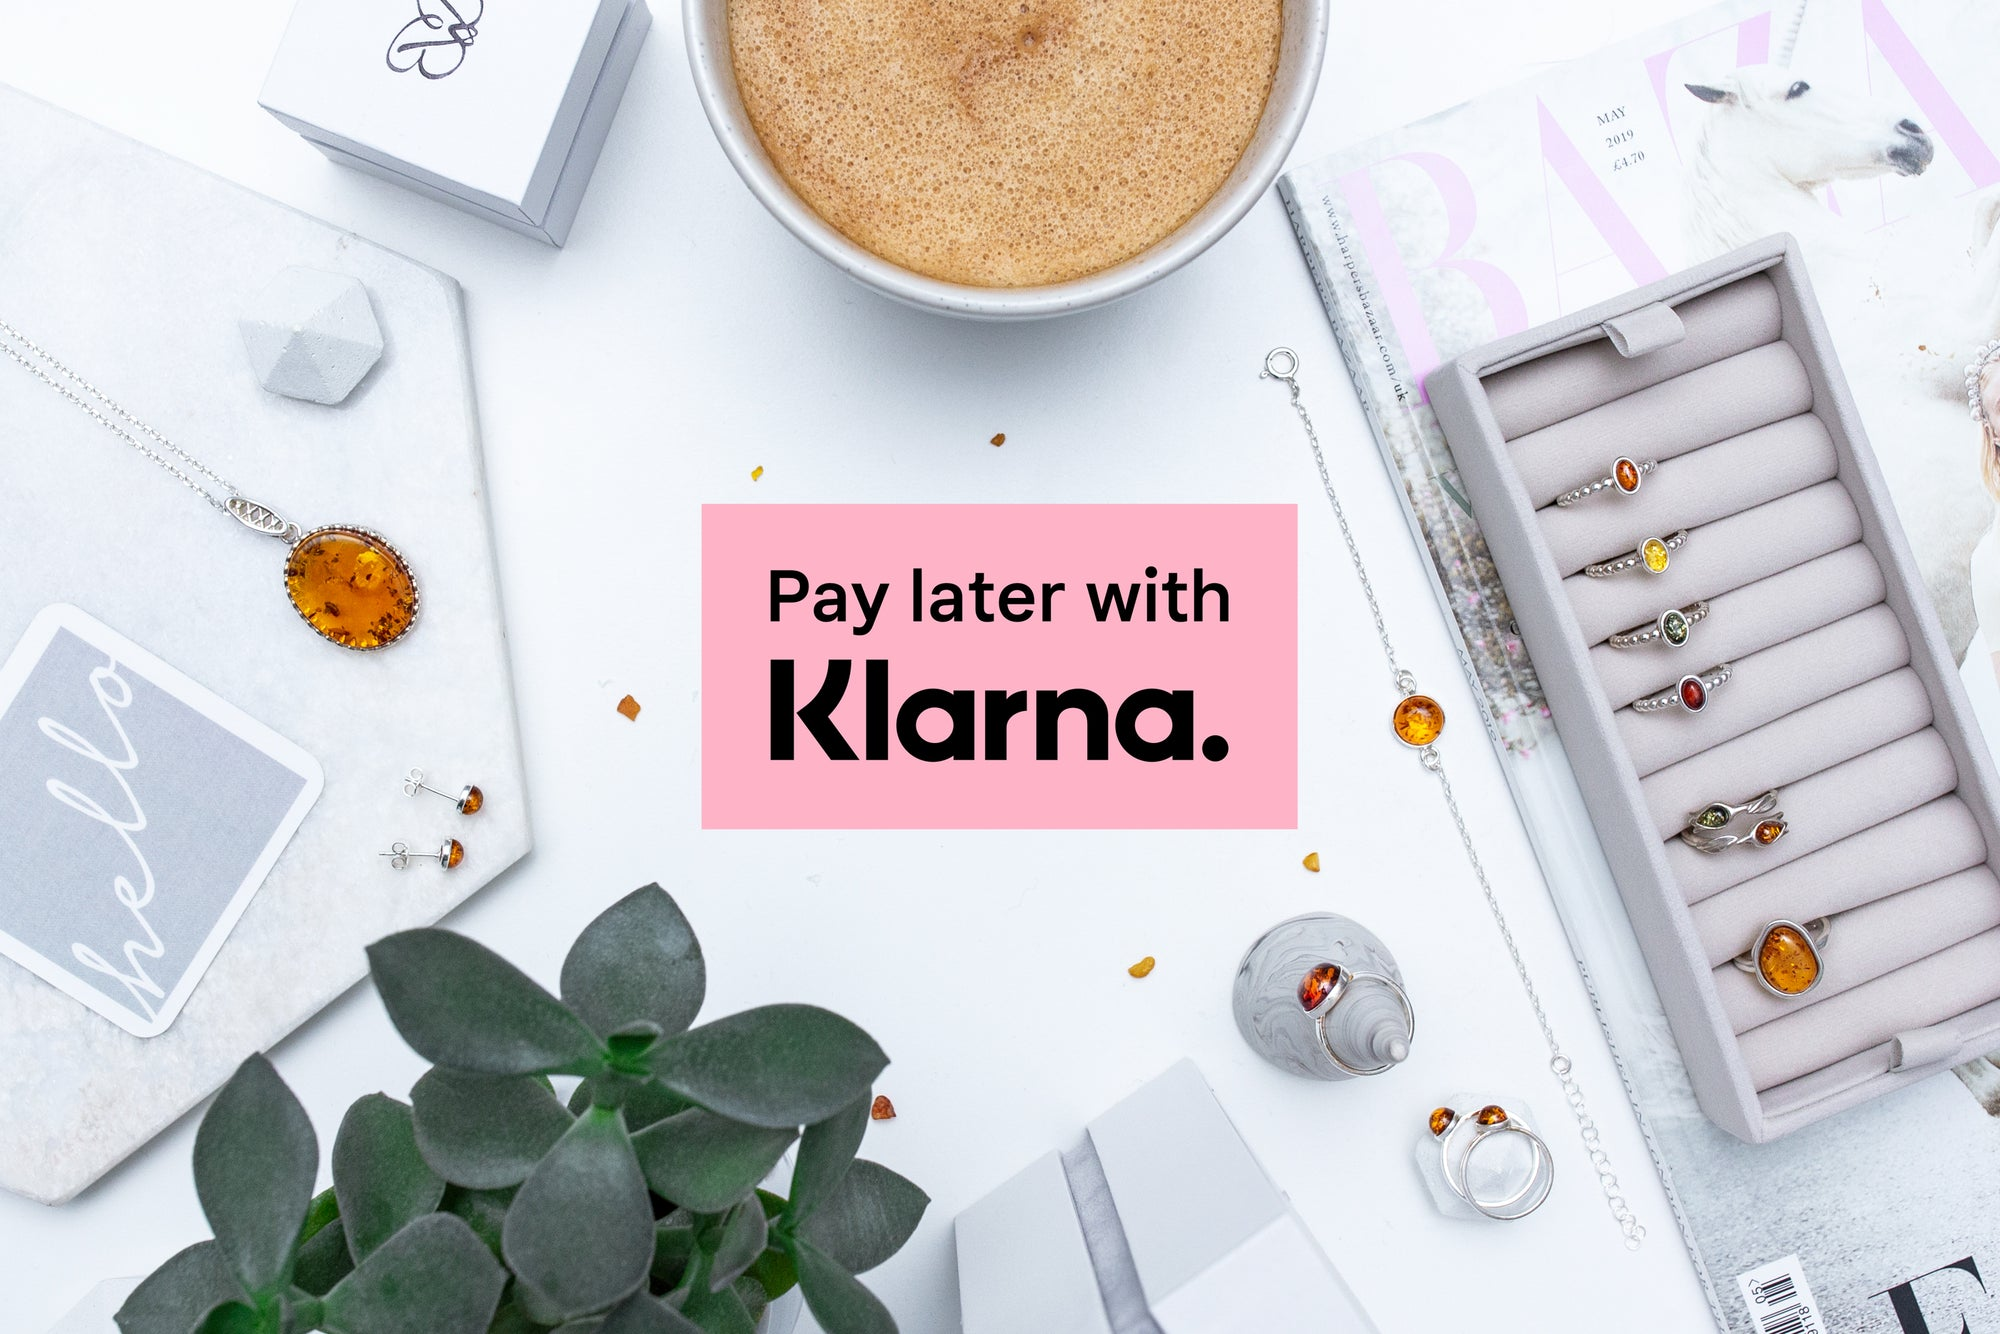 Get the Amber Jewellery you love TODAY & pay later with Klarna.